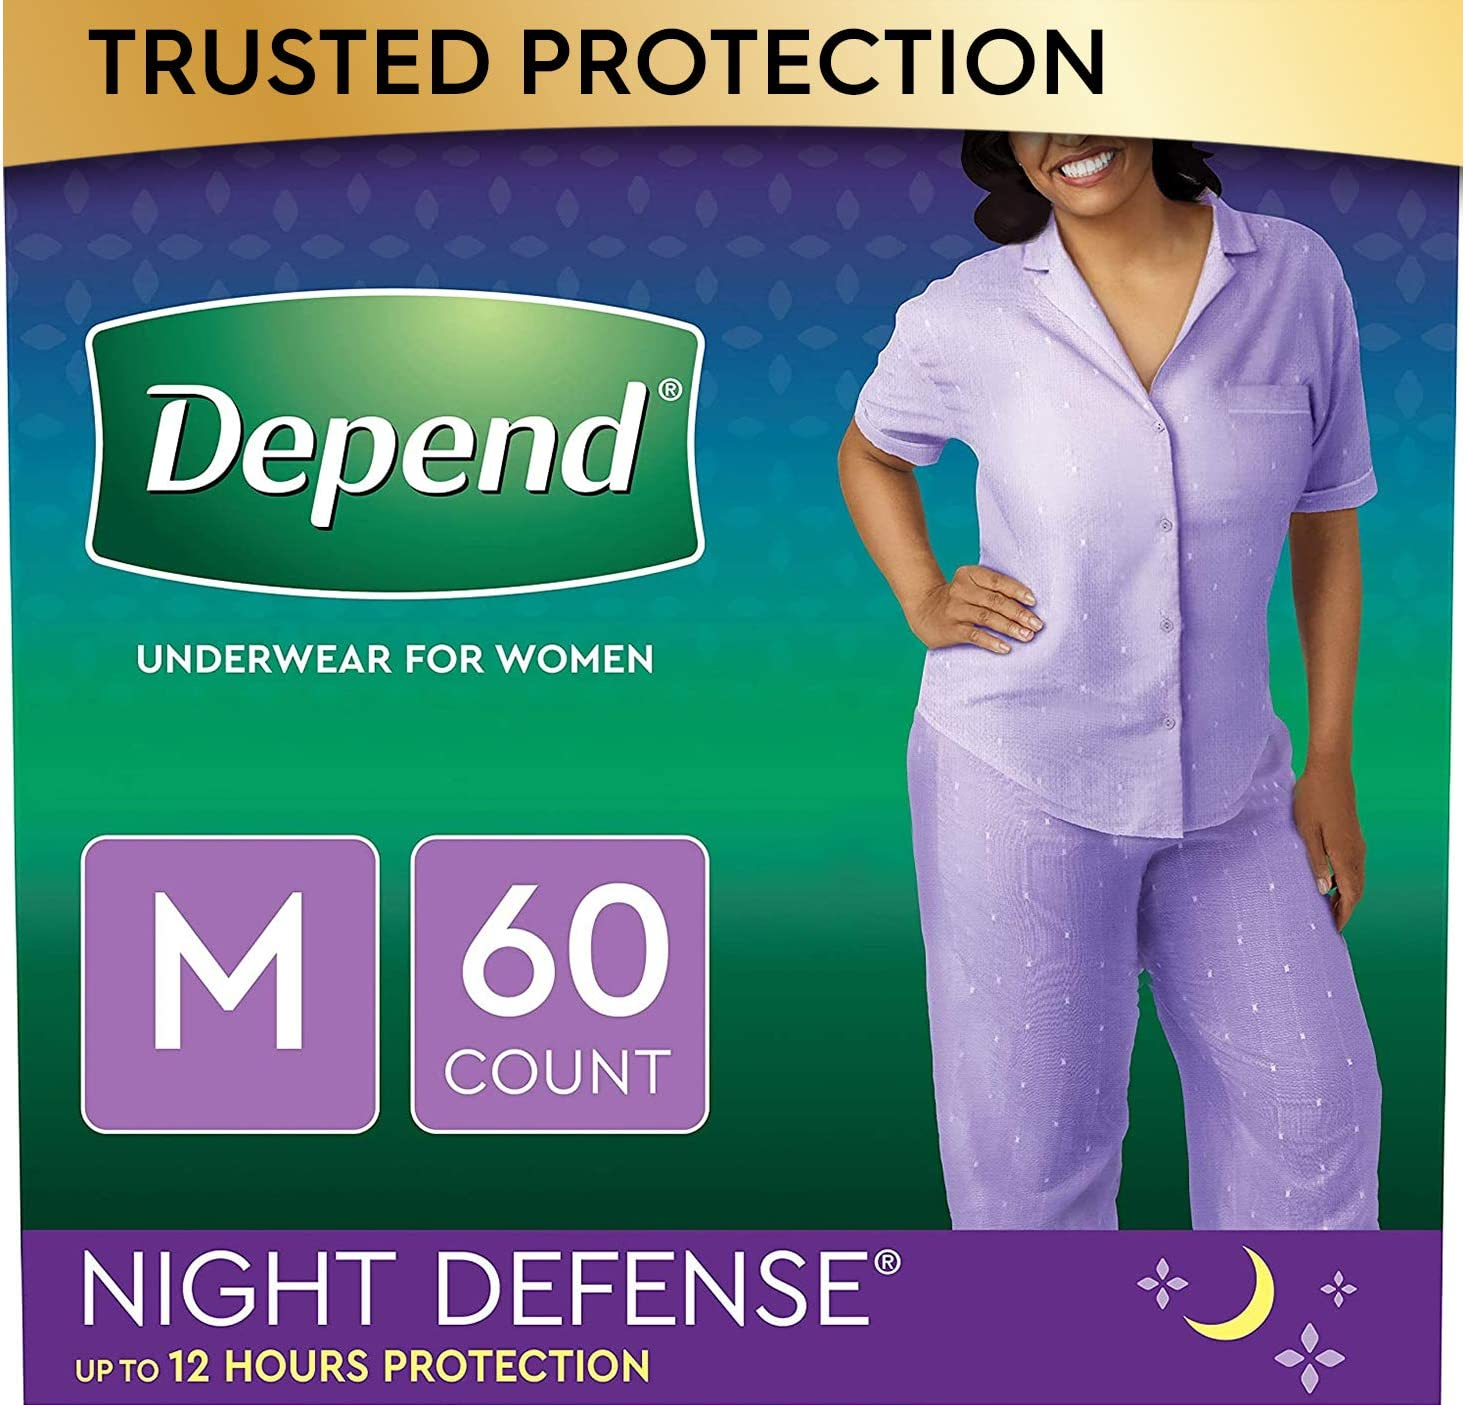 Depend Night Defense Incontinence Underwear for Women, Disposable, Overnight, Medium, Blush, 60 Count (4 Packs of 15) (Packaging May Vary): Health & Personal Care